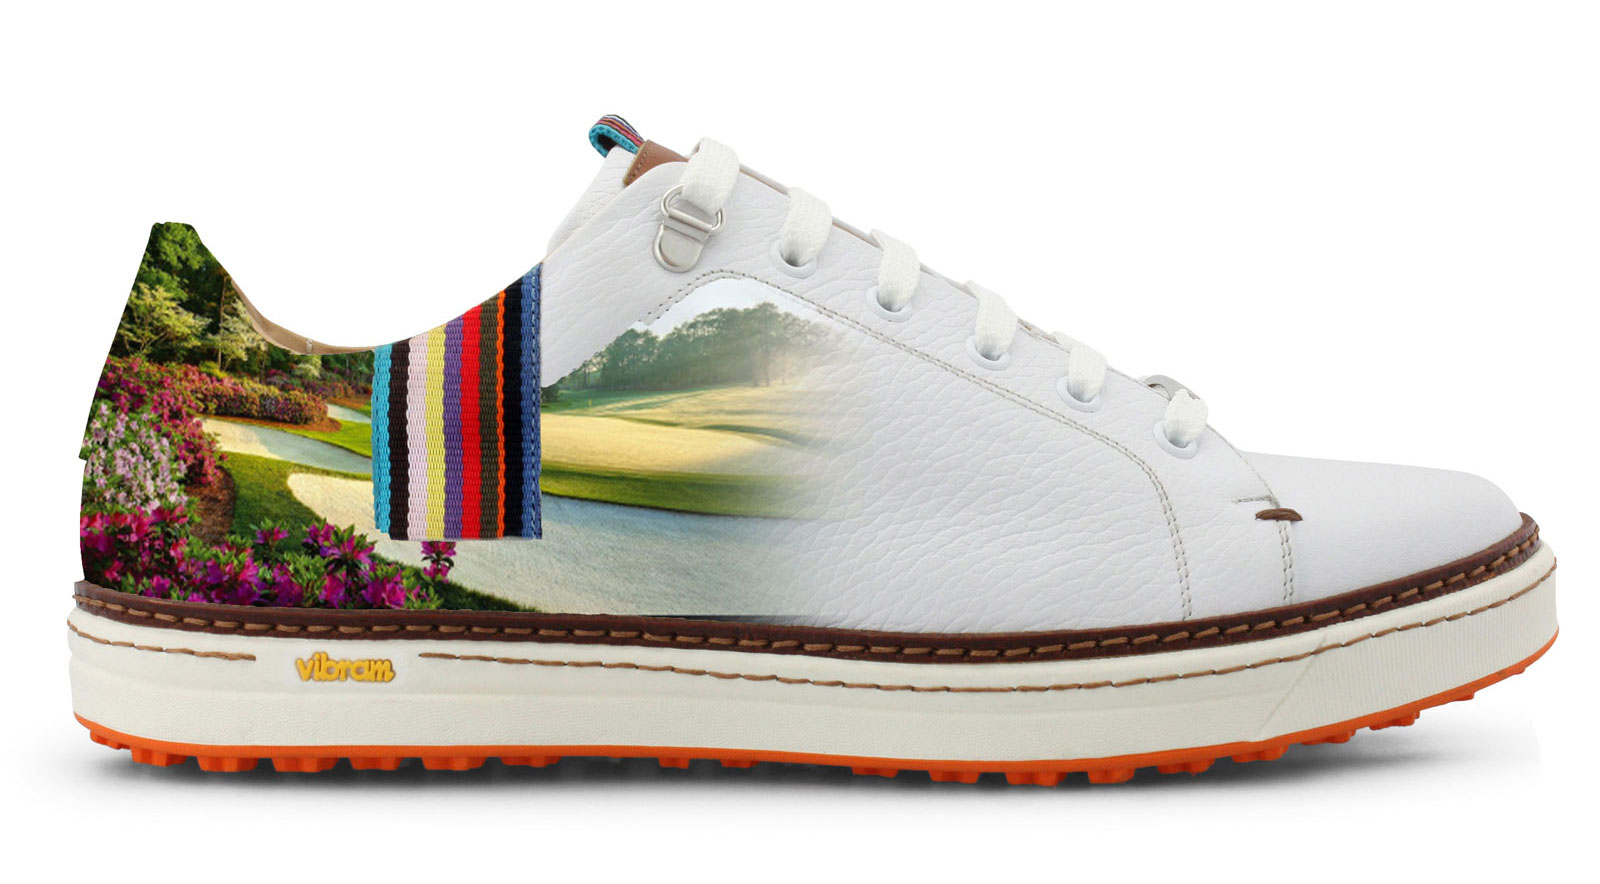 Masters golf shoe